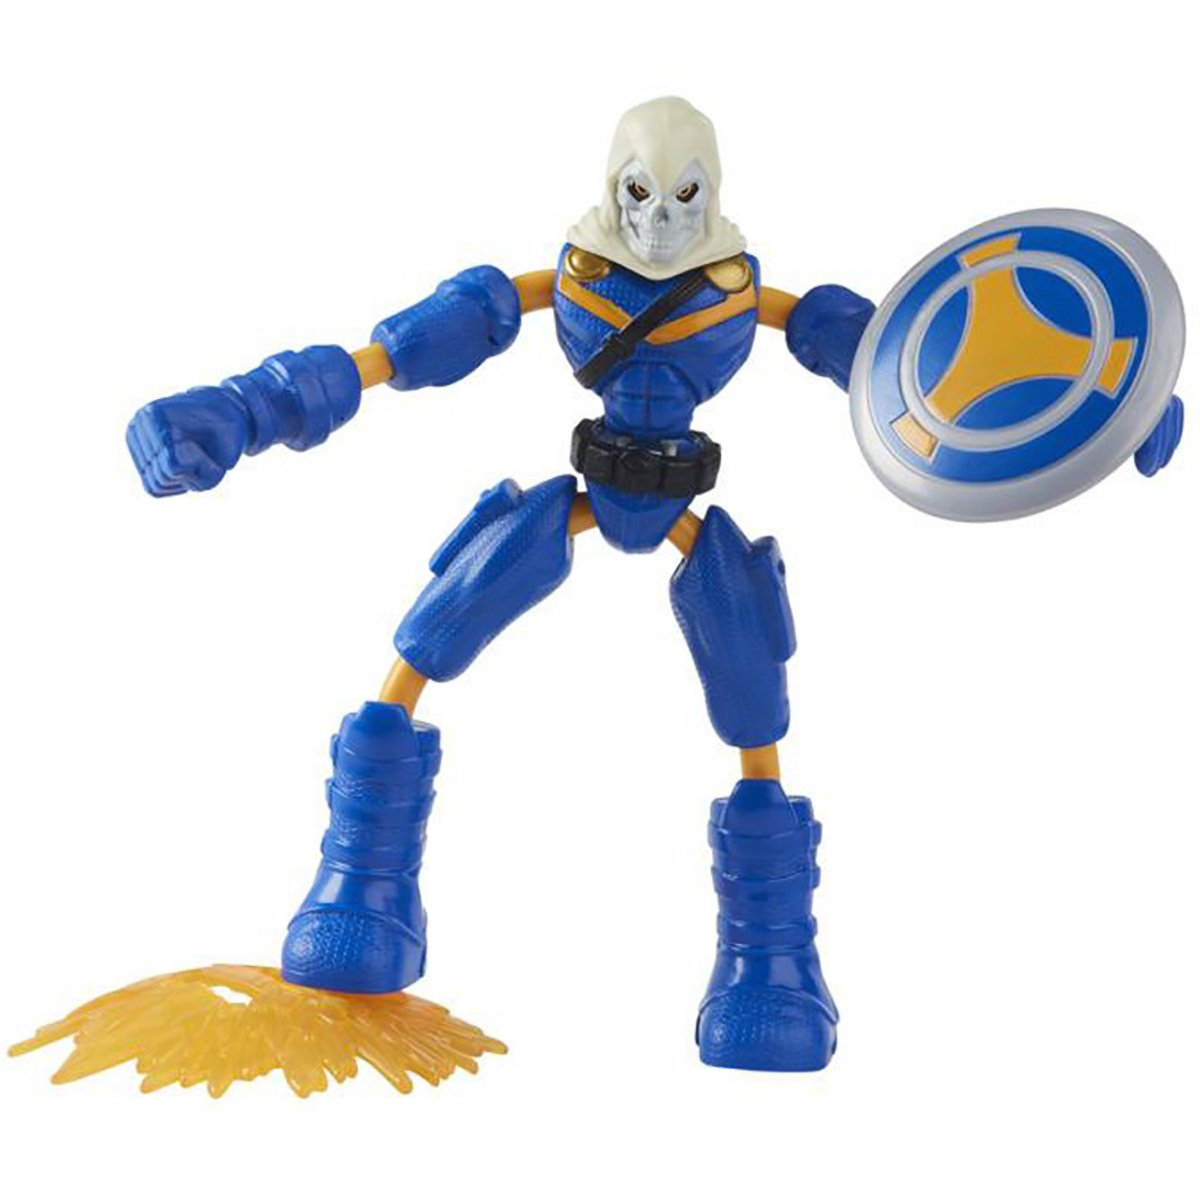 Figurina flexibila Avengers Bend and Flex, Taskmaster (F0970)